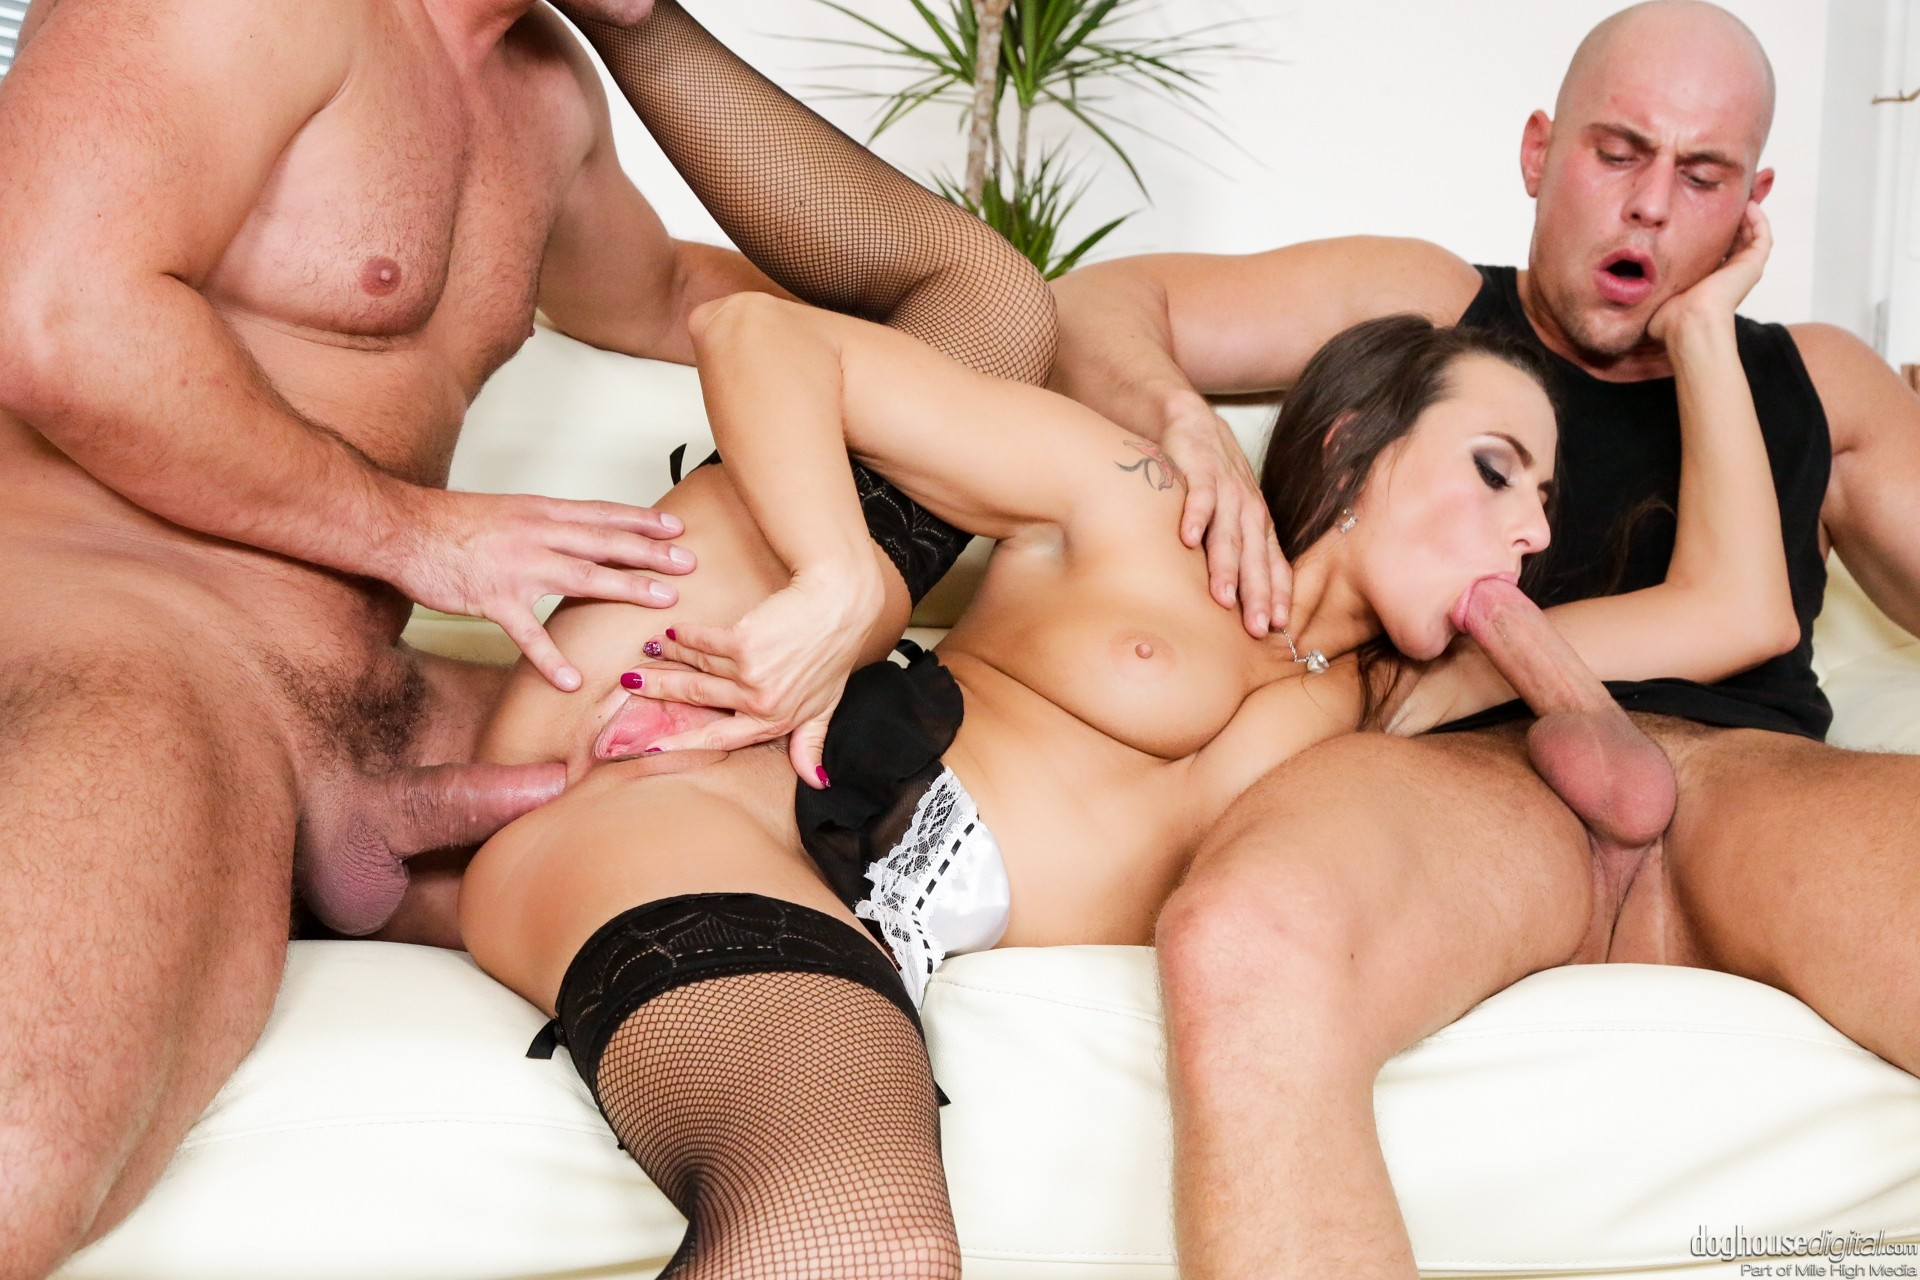 does black cock hurt – Anal